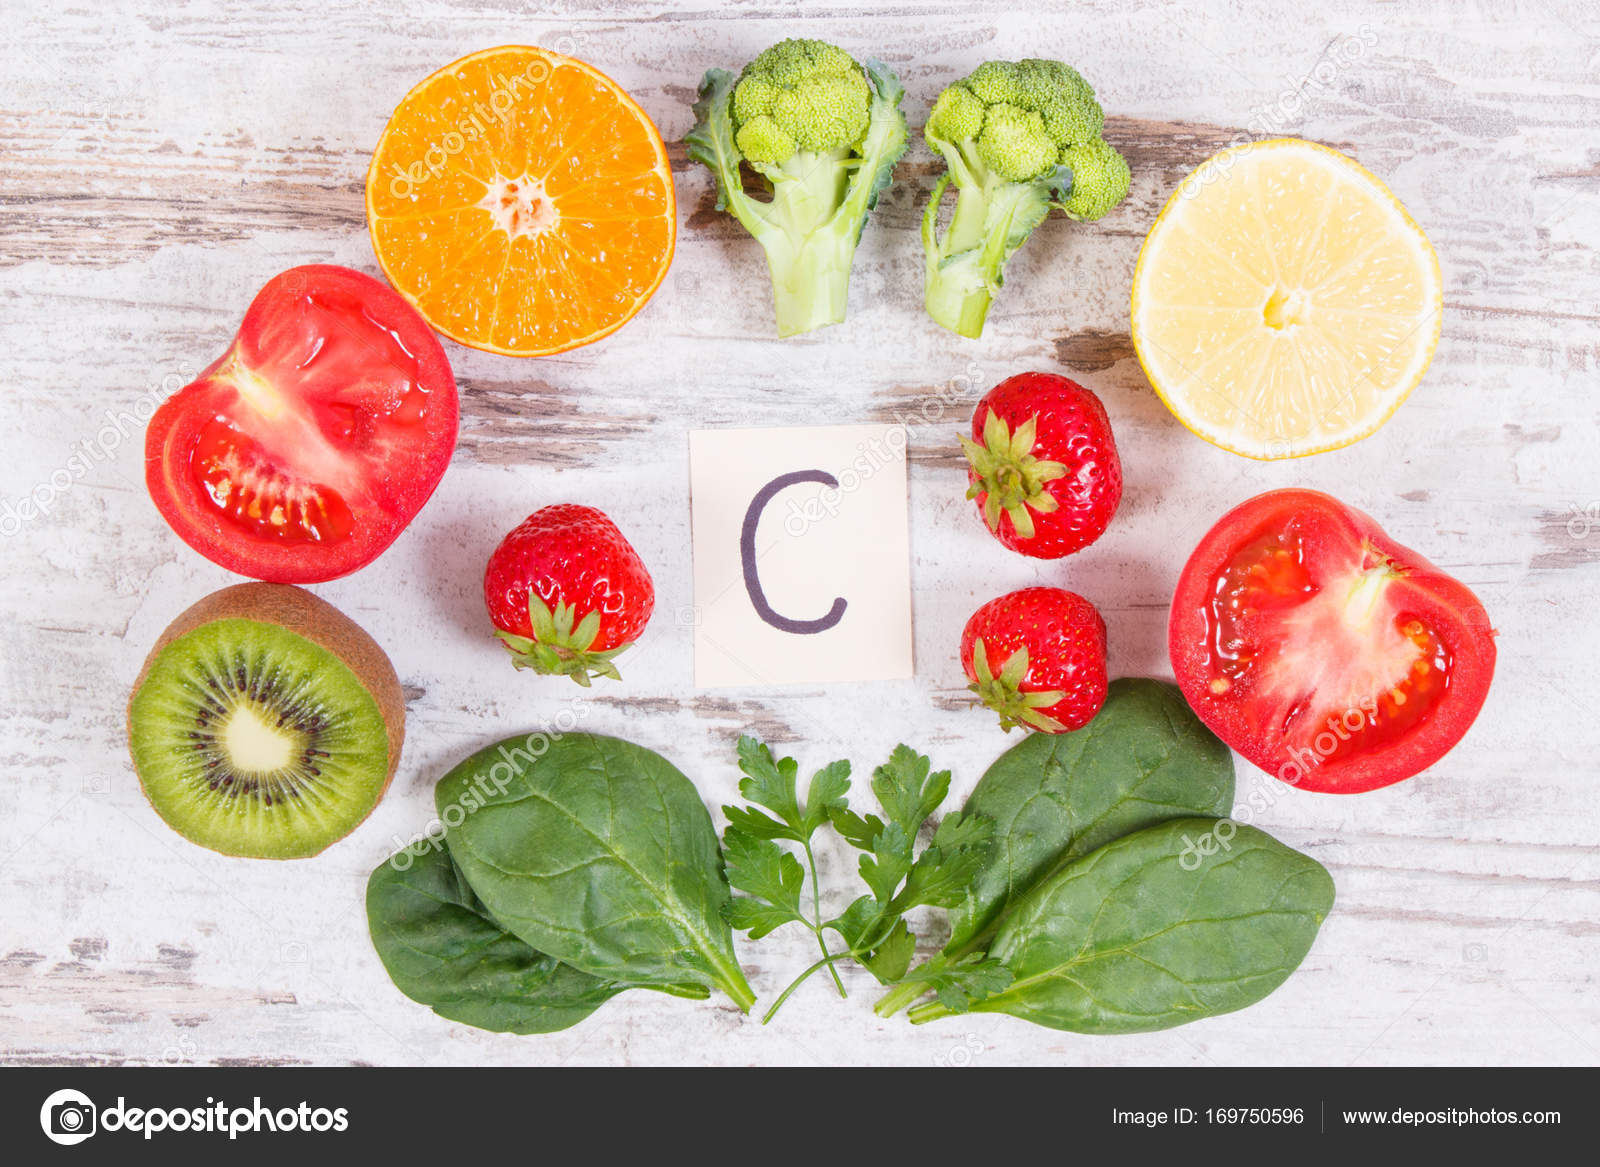 Fruits and vegetables as sources vitamin c dietary fiber and fruits and vegetables as sources vitamin c dietary fiber and minerals strengthening immunity concept workwithnaturefo